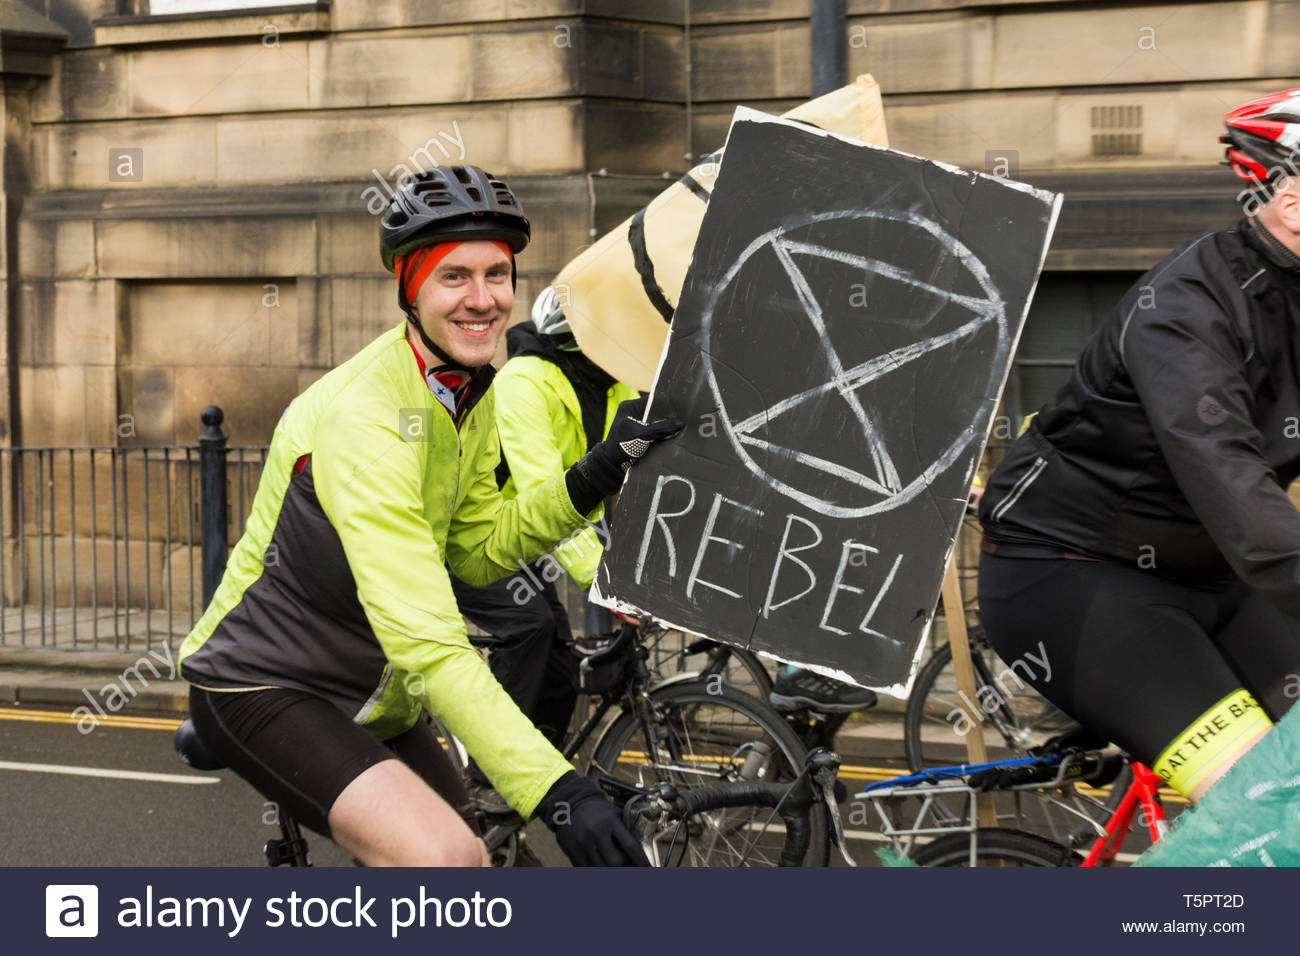 Lancaster, Lancashire, England, UK. 26th Apr, 2019. Morecambe Bay Extinction Rebels hold a Critical Mass Event starting in Dalton Square, Lancaster to increase awareness of the impacts of Climate Change and to seek drastic action to reduce the increase in CO2 levels. The aim is to dominate the streets with sustainable healthy travel, by cycling round the often gridlocked one way system in the City. Lancaster City Council declared a 'Climate Emergency' in January 2019. Credit: Keith Douglas News/Alamy Live News Stock Photo